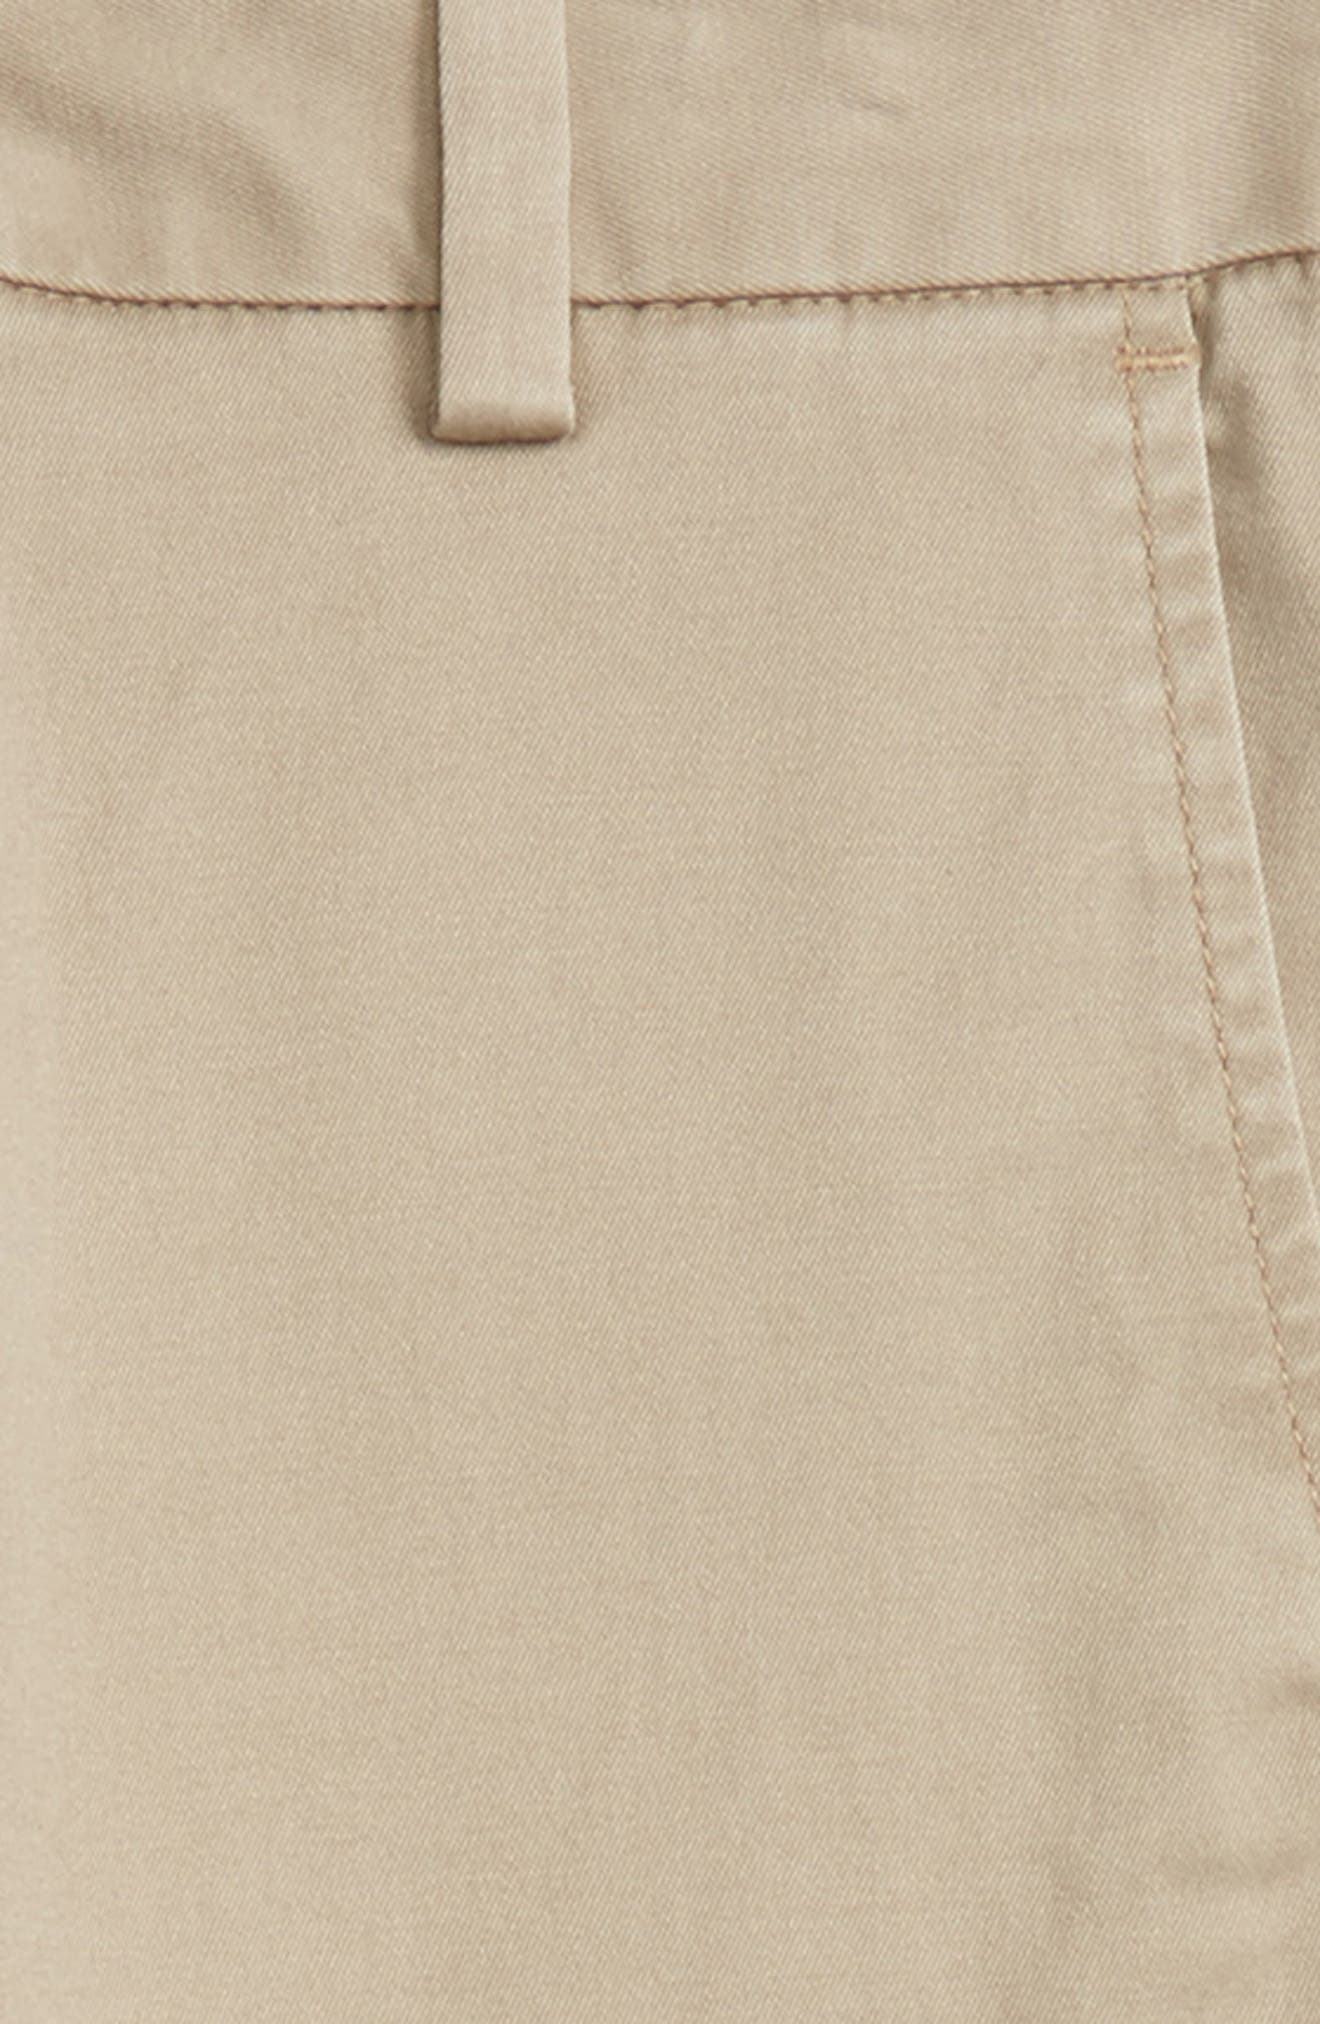 Breaker Pants,                             Alternate thumbnail 2, color,                             KHAKI